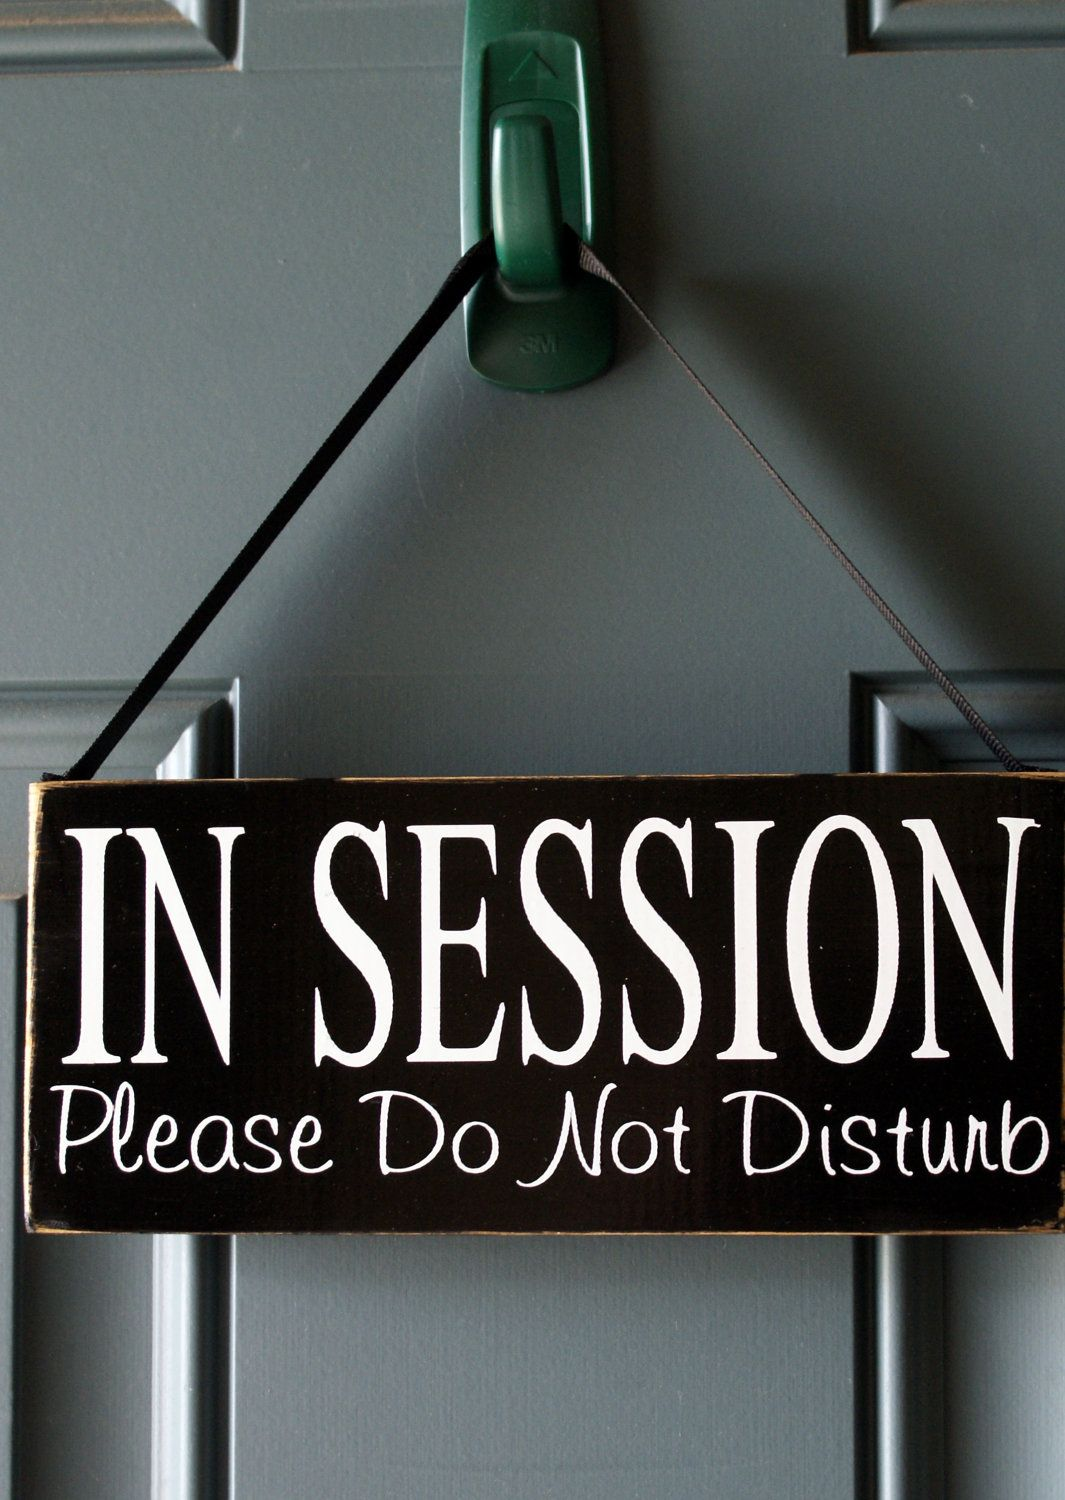 in session door sign maybe say please have a seat instead of do not disturb